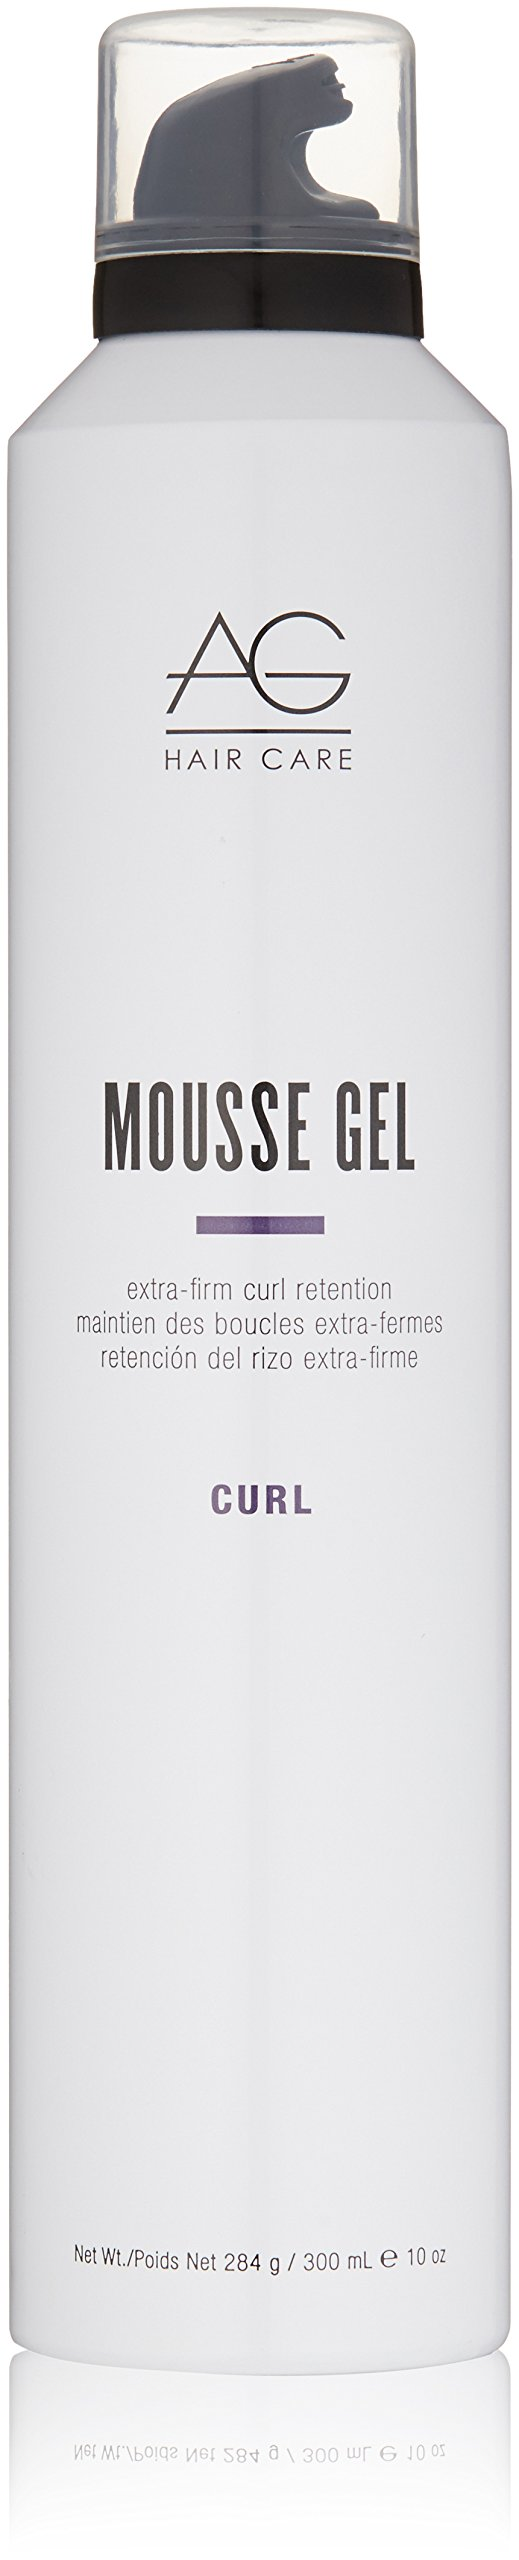 AG Hair Curl Mousse Gel Extra-Firm Curl Retention 10 Fl Oz